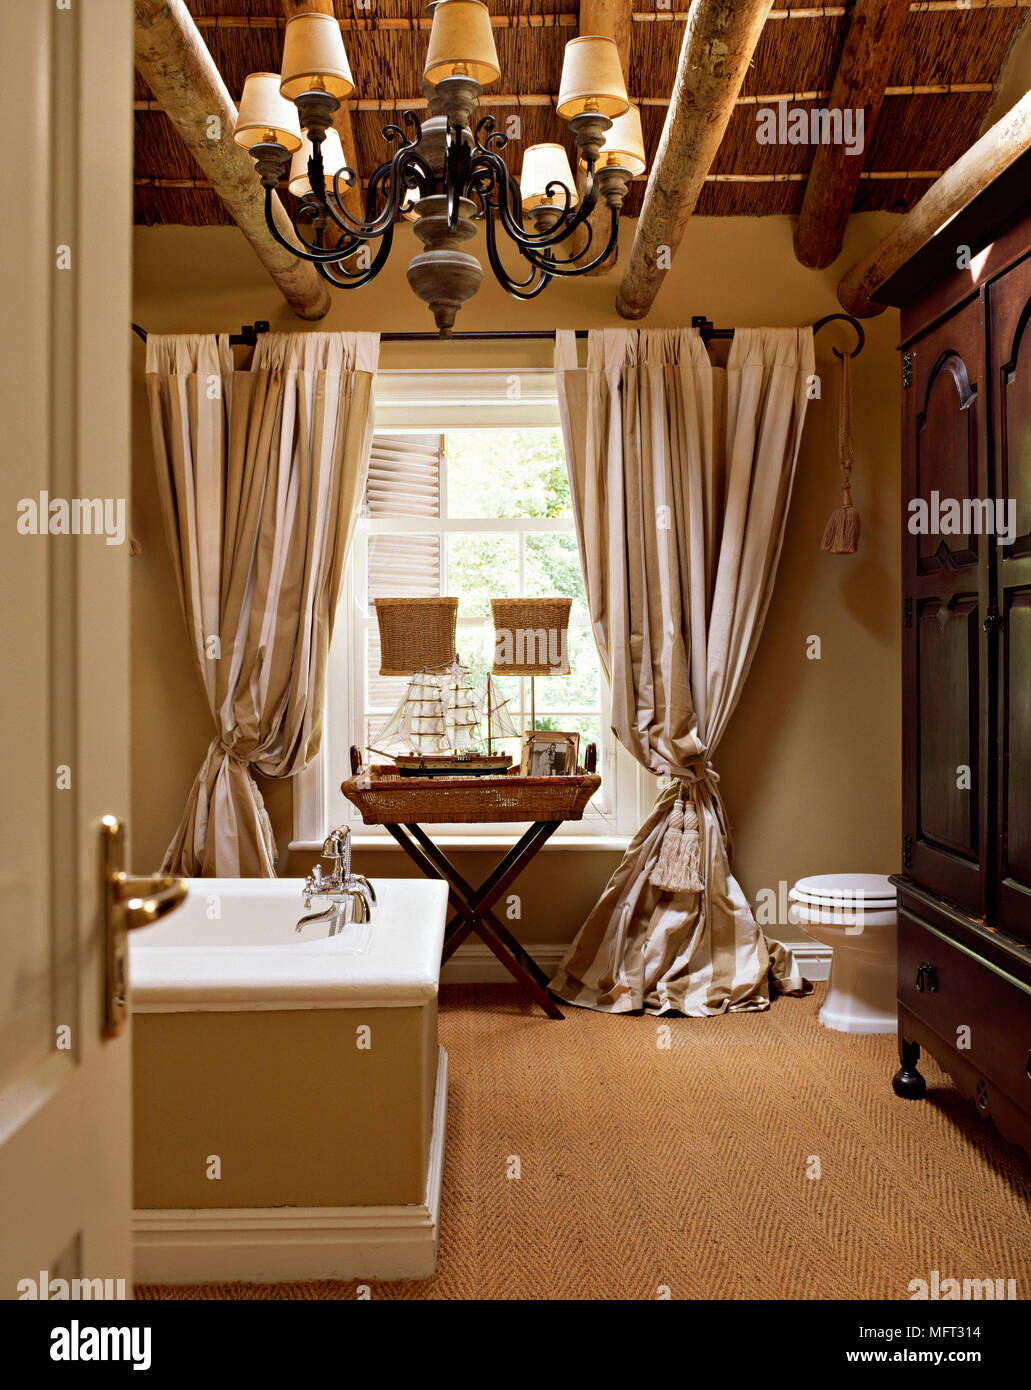 Traditional bathroom detail timber beamed ceiling bath wrought iron ...